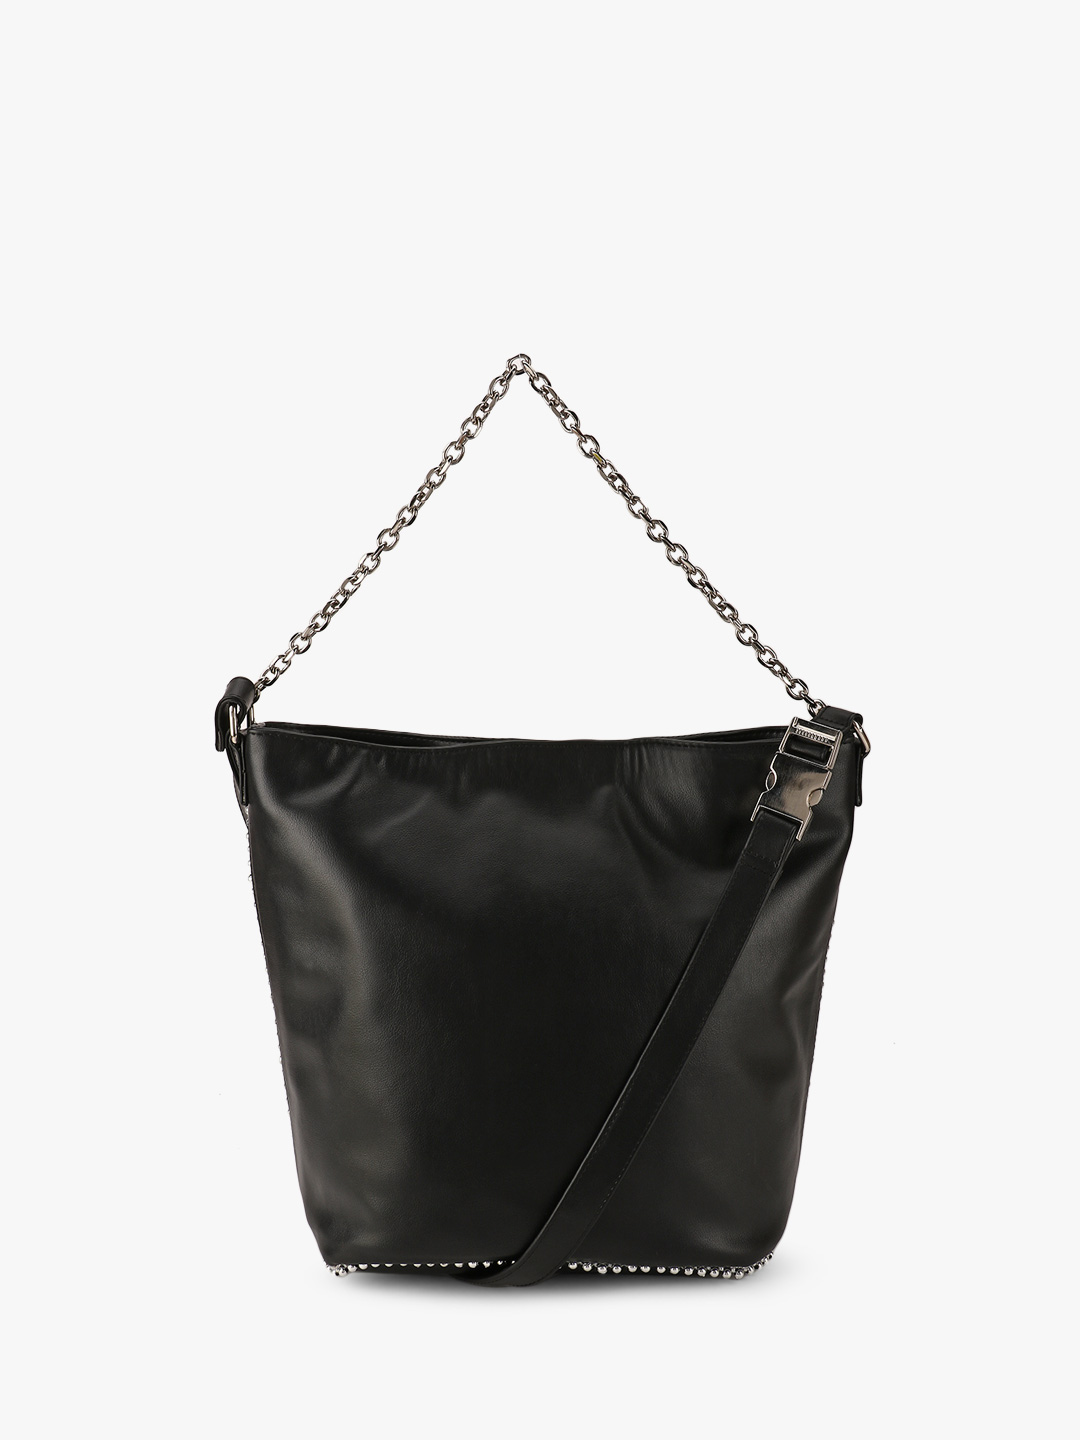 Paris Belle Black Chain Detail Tote Bag 1